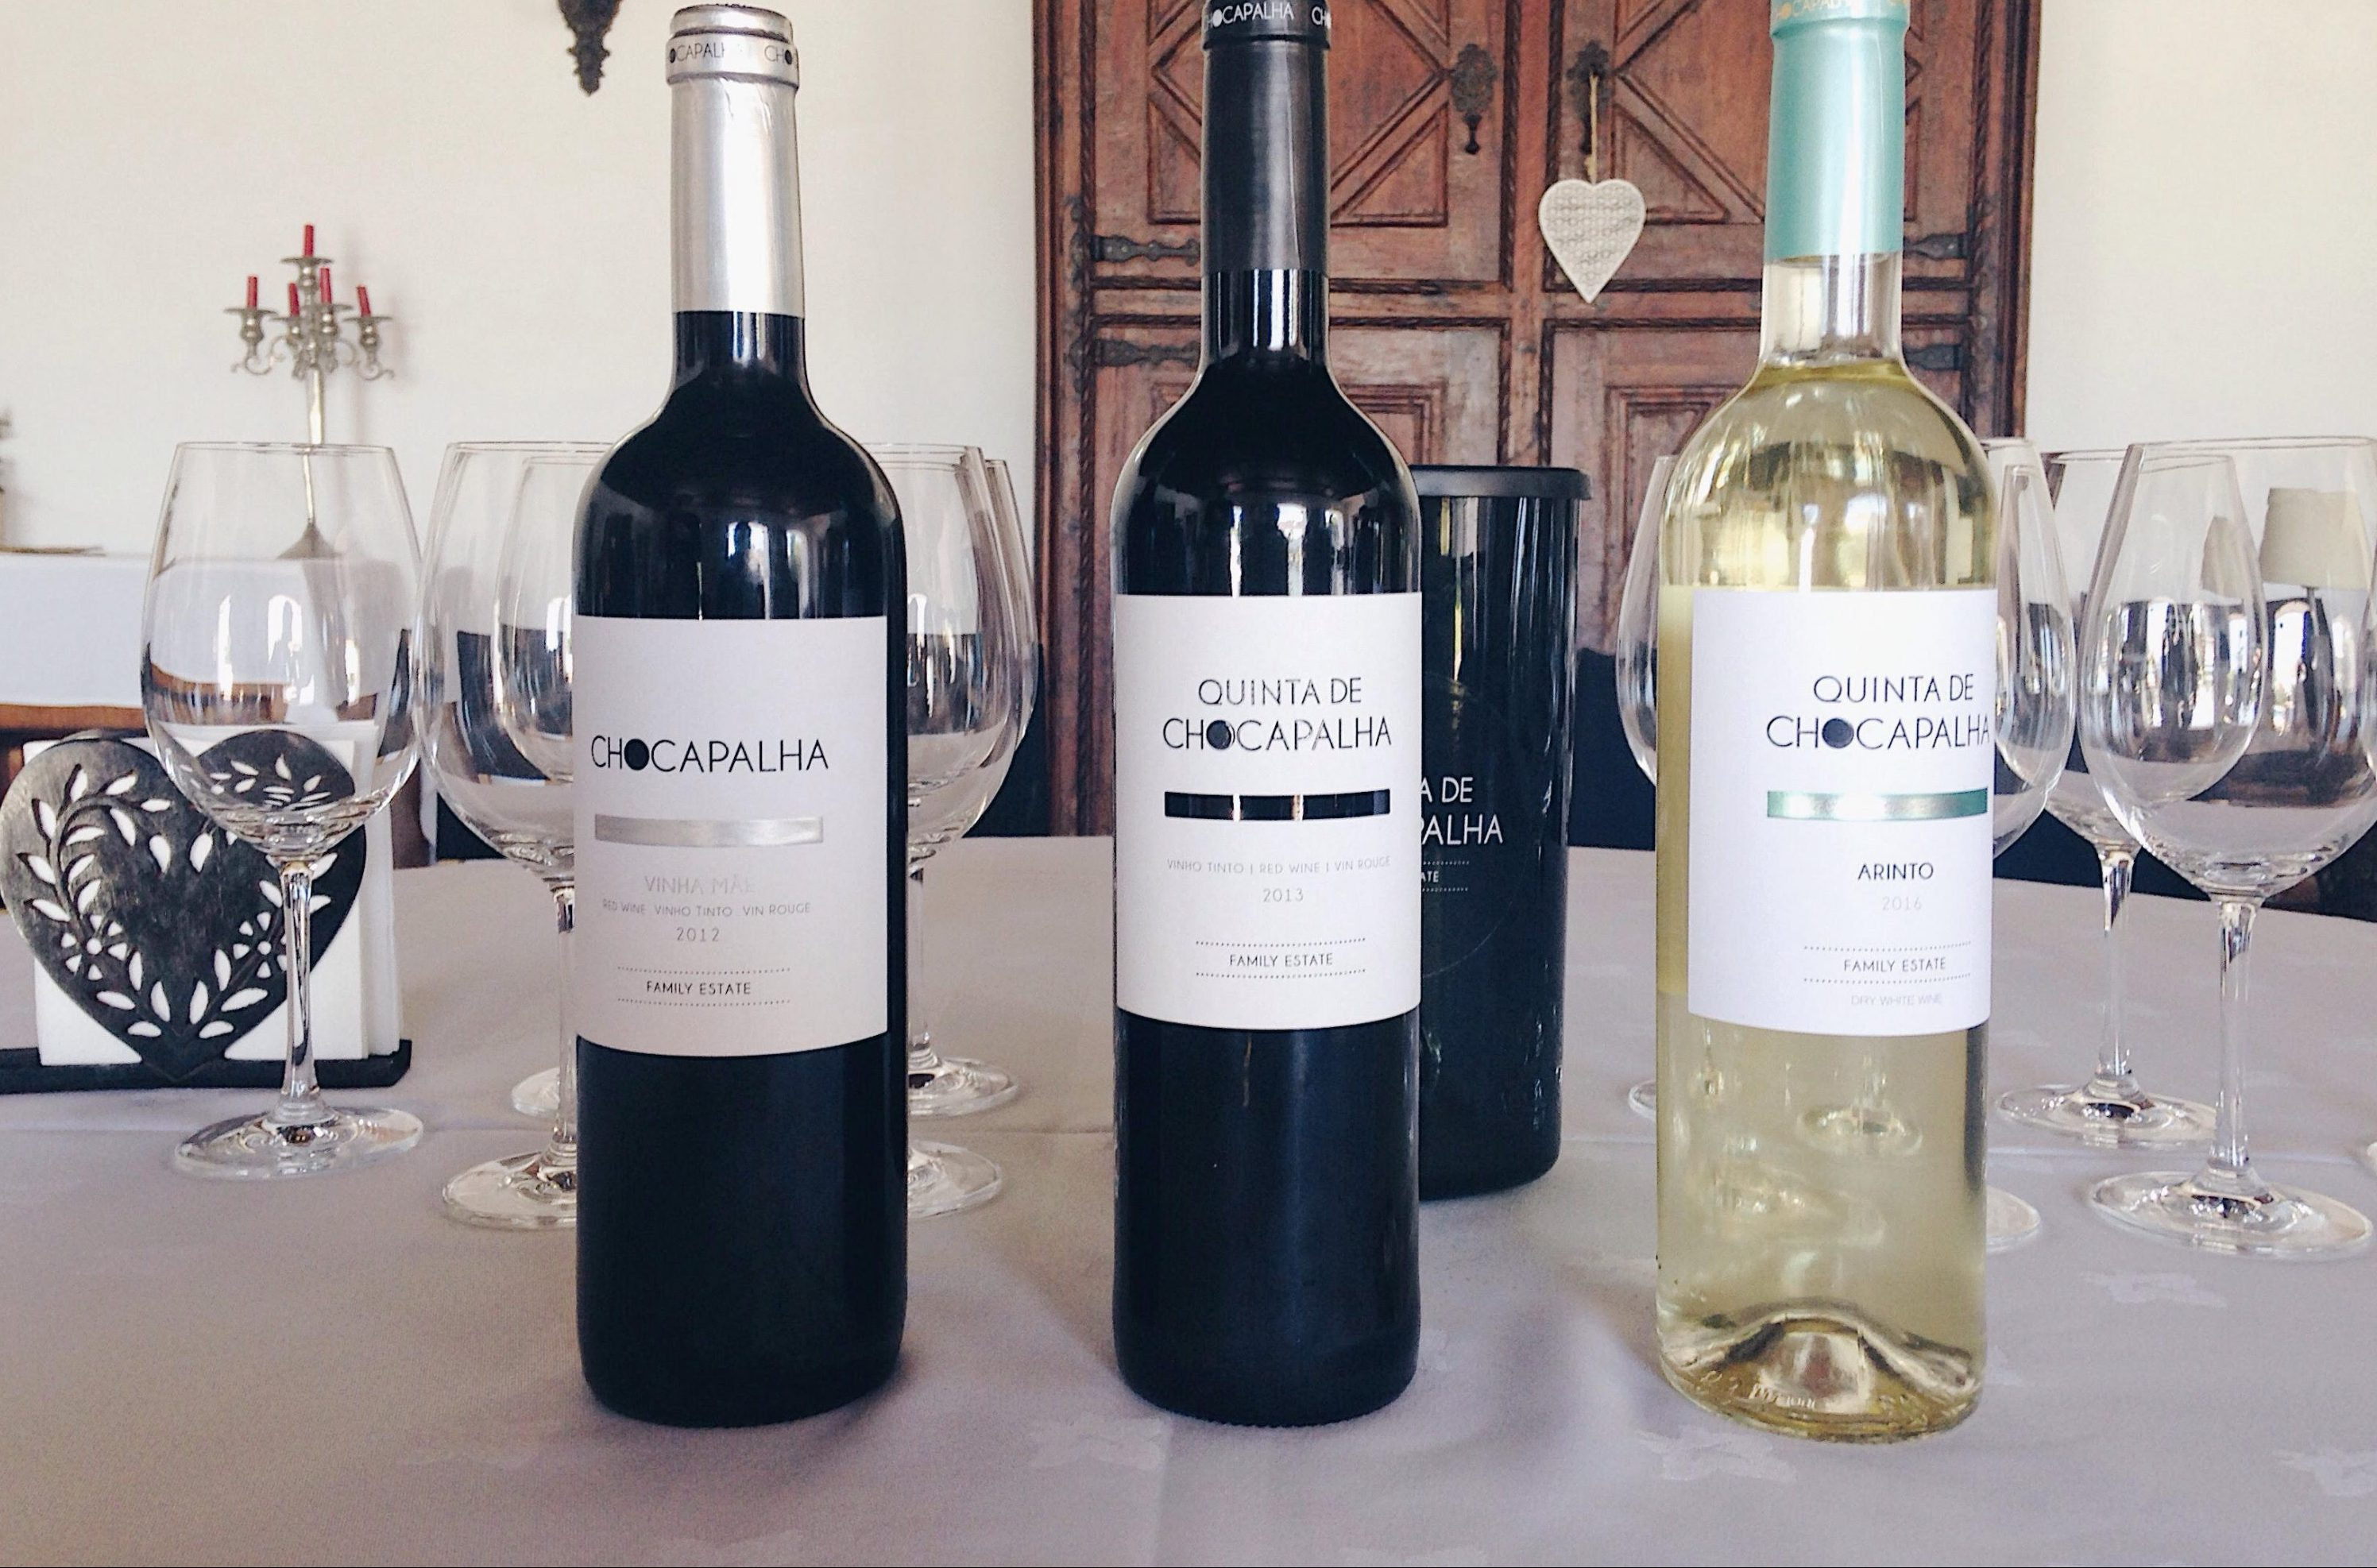 Wine Tasting at Quinta de Chocapalha